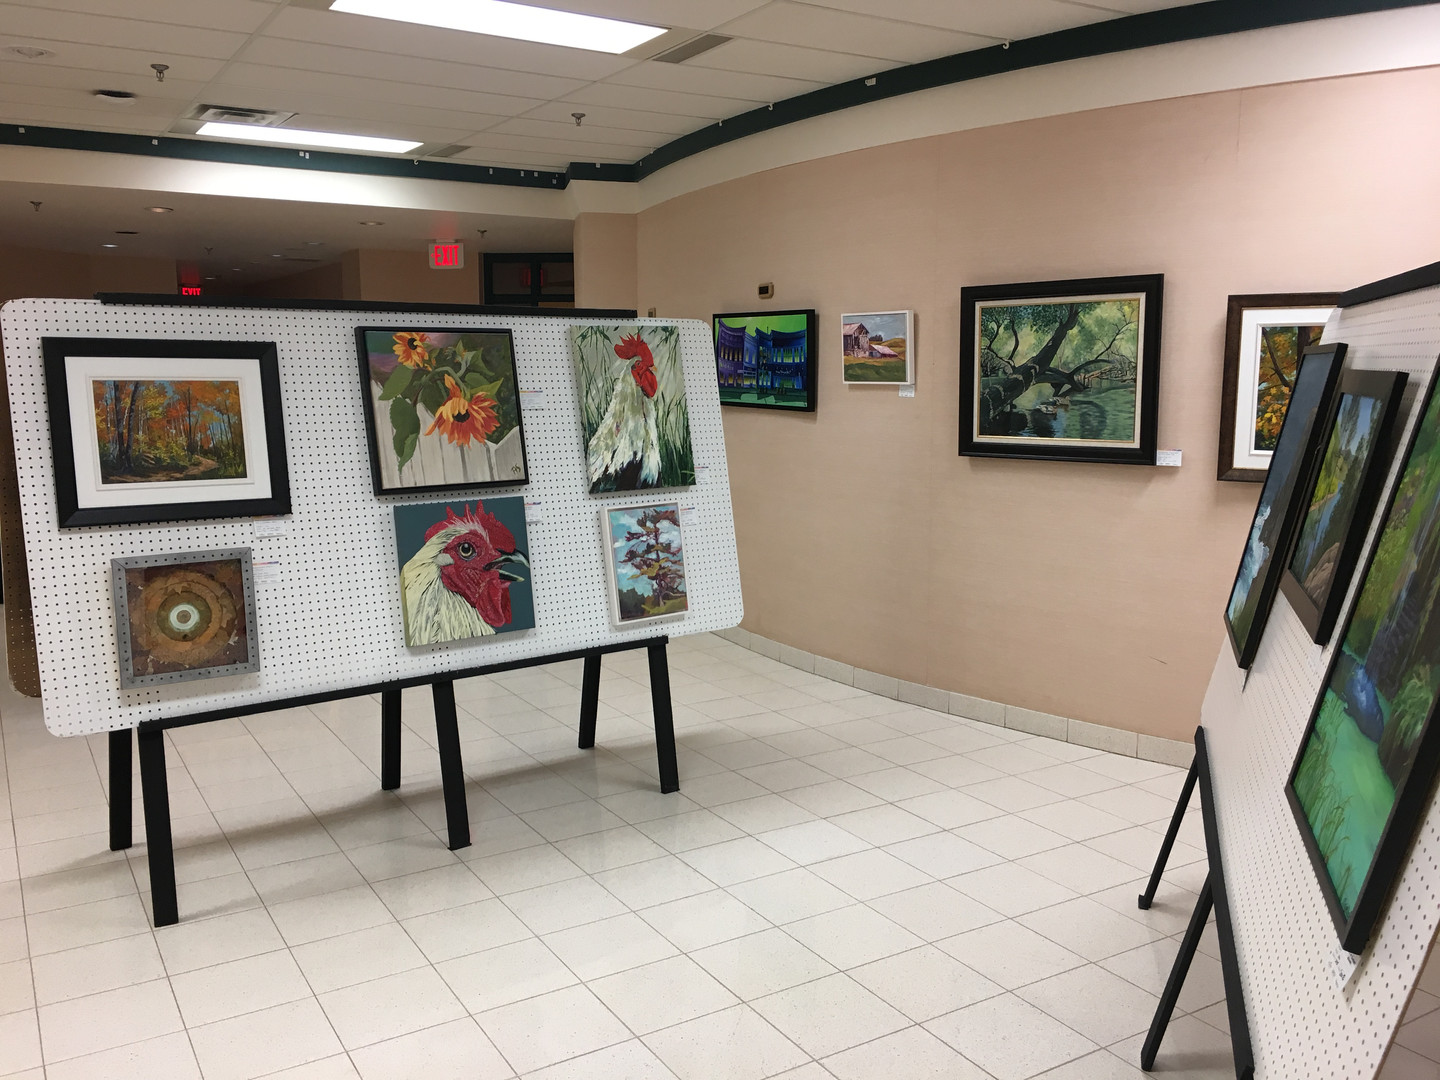 55th Annual Aurora Art Show